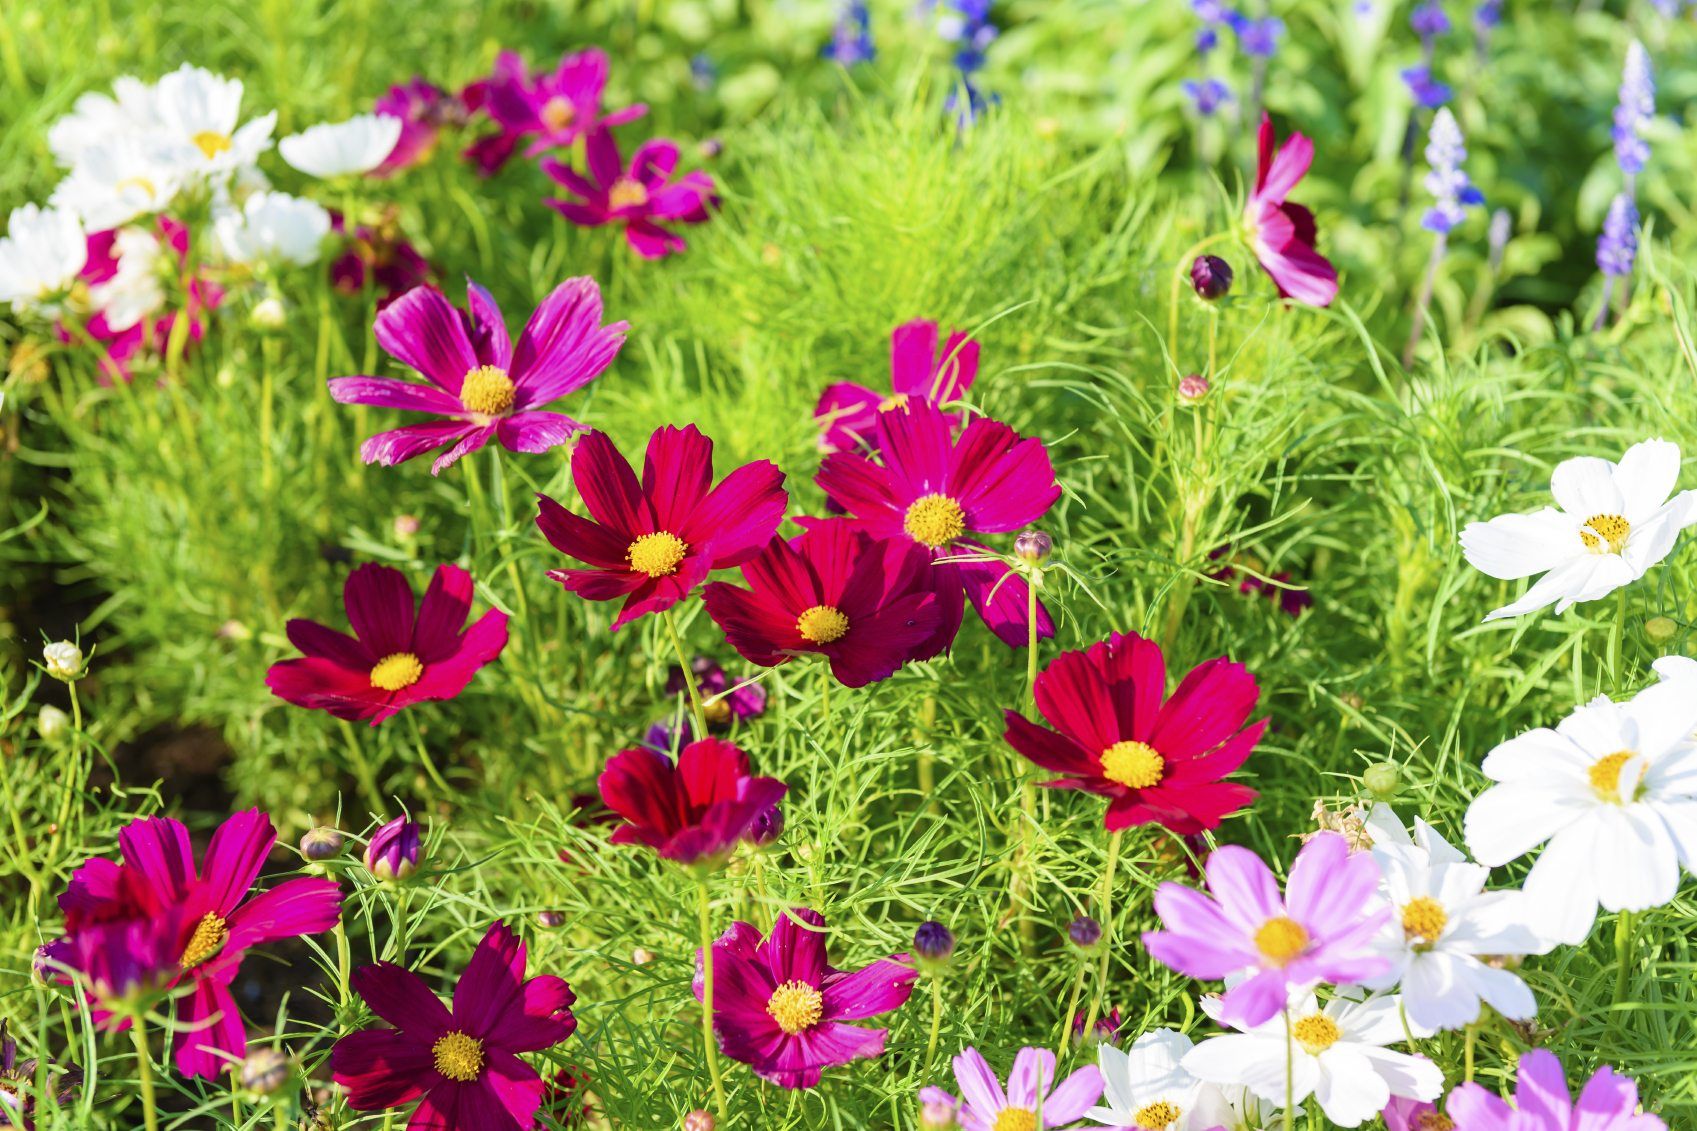 Different Varieties Of Cosmos Flowers